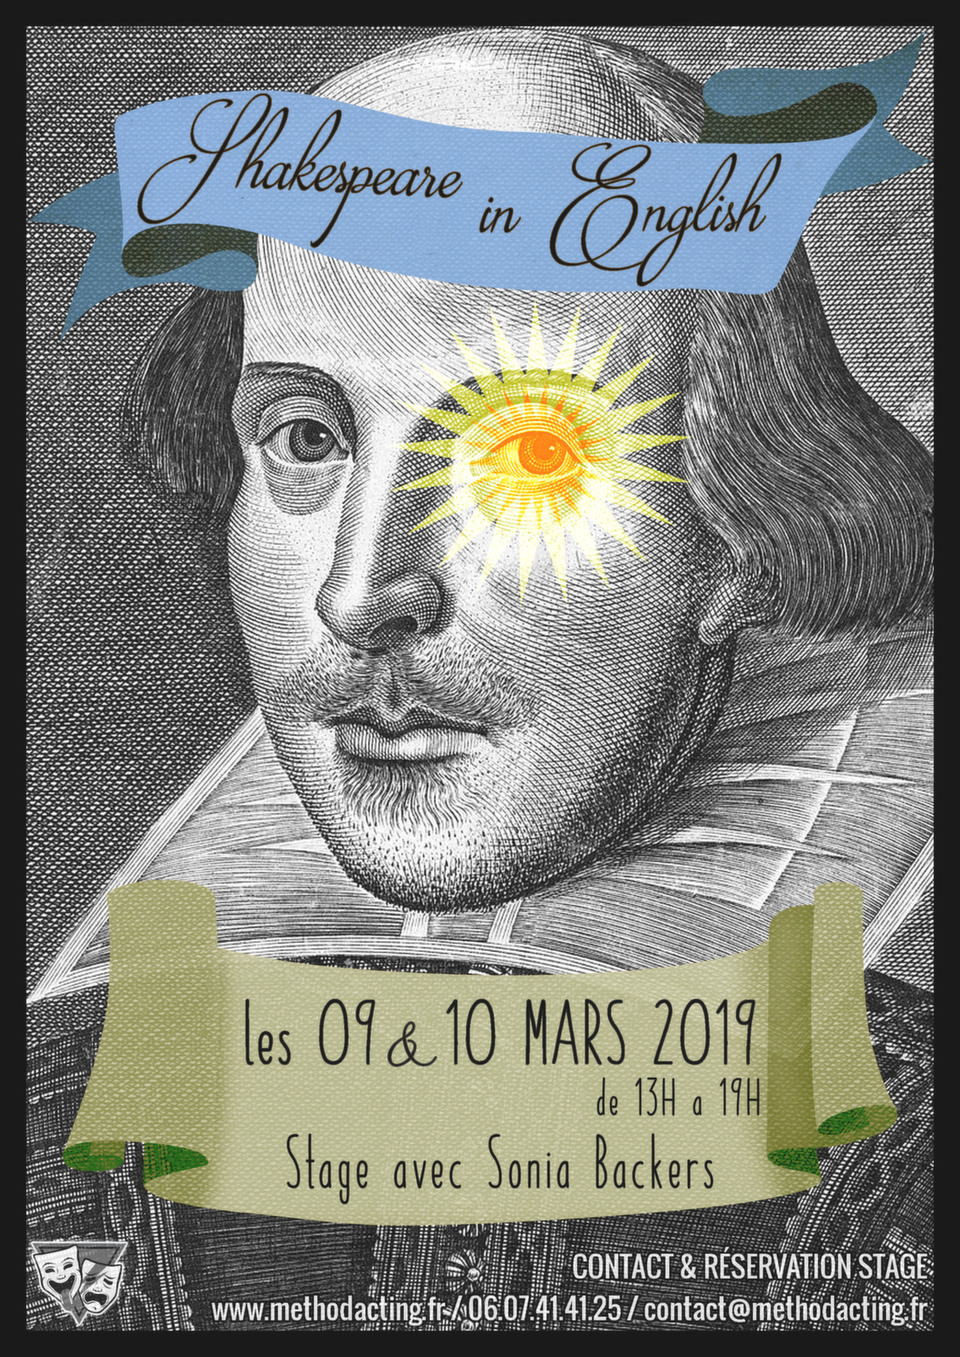 Stage Shakespeare & Actors Studio<br />Method Acting Center<br /><br />To be or not to be.<br /><br />L'écriture de Shakespeare englobe tous les aspects du travail de l'acteur. Method Acting Center propose un atelier pour maîtriser à la fois le langage spécifique de cet auteur, sa dimension humaine et l'intériorité de ses personnages.<br /><br />À travers des outils pragmatiques et concrets de la méthode, vous pourrez ainsi mieux aborder   les grands textes, les grands thèmes et les personnages de ces classiques. Et par ce travail, nous réaliserons l'évidence de l'indémodable modernité de Shakespeare.<br /><br />WEEKEND du 9 & 10 Mars 2019<br />de 13h à 19h,<br />au 93 Avenue d'Italie, Paris 13e<br />avec Sonia BACKERS<br /><br />OBJECTIFS du Stage SHAKESPEARE & ACTORS STUDIO<br />- Découvrir le langage de Shakespeare et parvenir à se l'approprier<br />- Travailler sur la caractérisation des personnages grâce à la Méthode<br />- Jouer les grands textes de Shakespeare sur scène<br /><br />INFOS & Réservation en ligne<br />- De 8 à 16 personnes<br />- 160€ pour 1 weekend<br />- Forfaits à partir de 3/6/9 stages weekend : 10% de remise / 15% de remise / 20% de remise, découvrez notre planning de stages 2018/2019<br />- Formations éligibles à l'AFDAS, aux OPCA, et Pôle emploi<br />- Un acompte de 30% vous sera demandé au moment de la réservation<br />https://www.methodacting.fr/stage-shakespeare-actors-studio/<br />contact@methodacting.fr<br />06 07 41 41 25<br /><br />------<br /><br />Stage Shakespeare & Actors Studio<br />Method Acting Center<br /><br />To be or not to be.<br /><br />Shakespeare's writing is a masterclass in all acting skills. Method Acting Center proposes a weekend workshop coming to the grips with the language and to the truthful connection to the human experiences of the characters.<br /><br />We will explore a pragmatic approach to set speeches, soliloquies and character. This workshop gives a connection and experience of his characters end themes and will help to show why Shakespeare is still relevant today.<br /><br />WEEKEND workshop 9th & 10th March 2019<br />1:00 pm to 7:00 pm<br />93, Avenue d'Italie, Paris 13e<br />with Sonia BACKERS<br /><br />OBJECTIVES of the workshop SHAKESPEARE & ACTORS STUDIO<br />- Discovering Shakespeare's language and how to make the words one's own<br />- Creating characters with the method<br />- Staging of speeches and sonnets<br /><br />INFO & BOOK Online<br />- 8 to 16 people<br />- 160€ for 1 Actors Studio Workshop, decreasing price depending on the number of workshops<br />https://www.methodacting.fr/stage-shakespeare-actors-studio/<br />contact@methodacting.fr<br />06 07 41 41 25